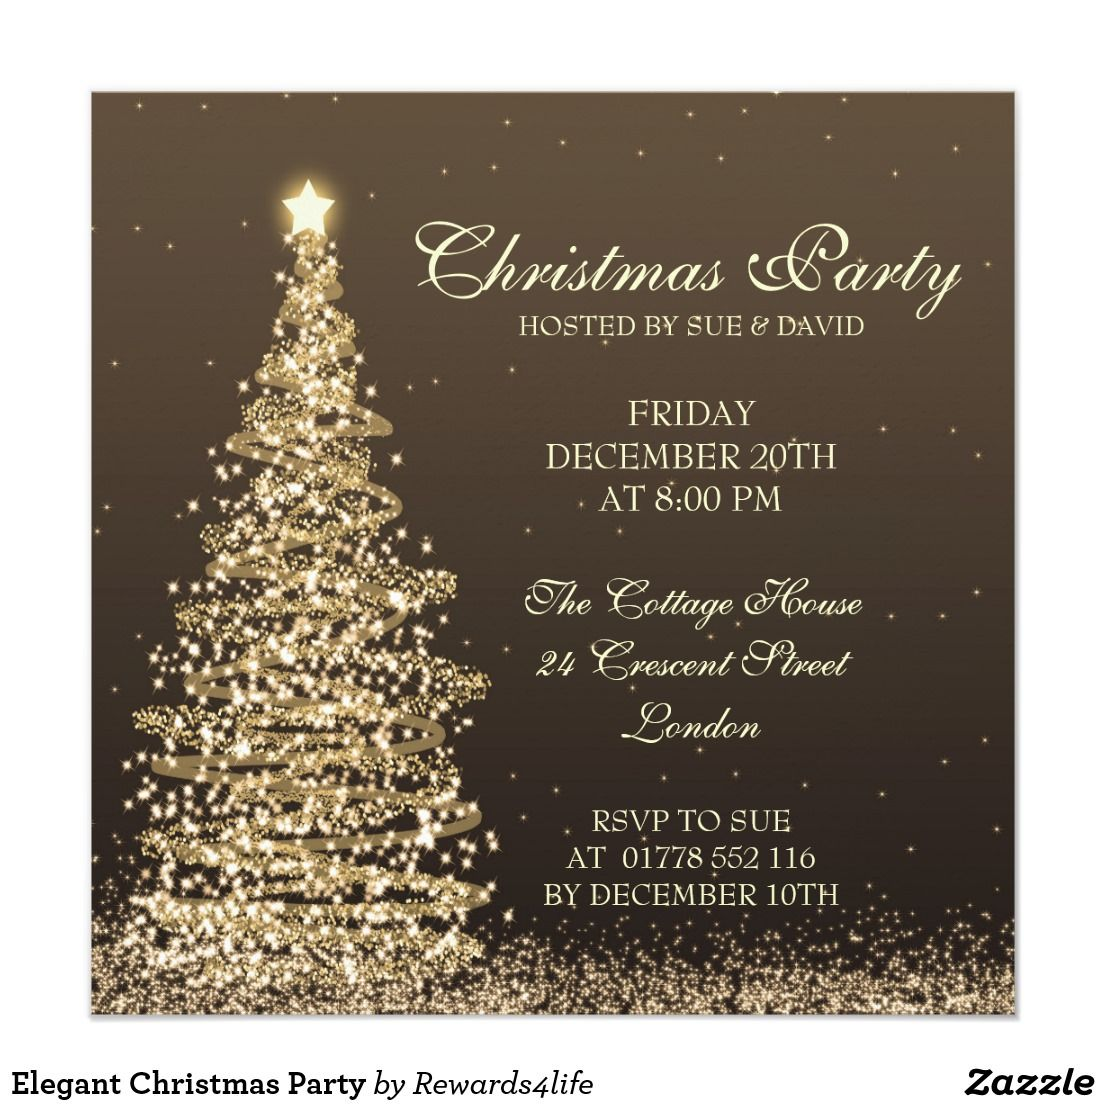 Elegant Christmas Party Card Elegant ChristmasWeddingDinner Party - Party invitation template: elegant christmas party invitation template